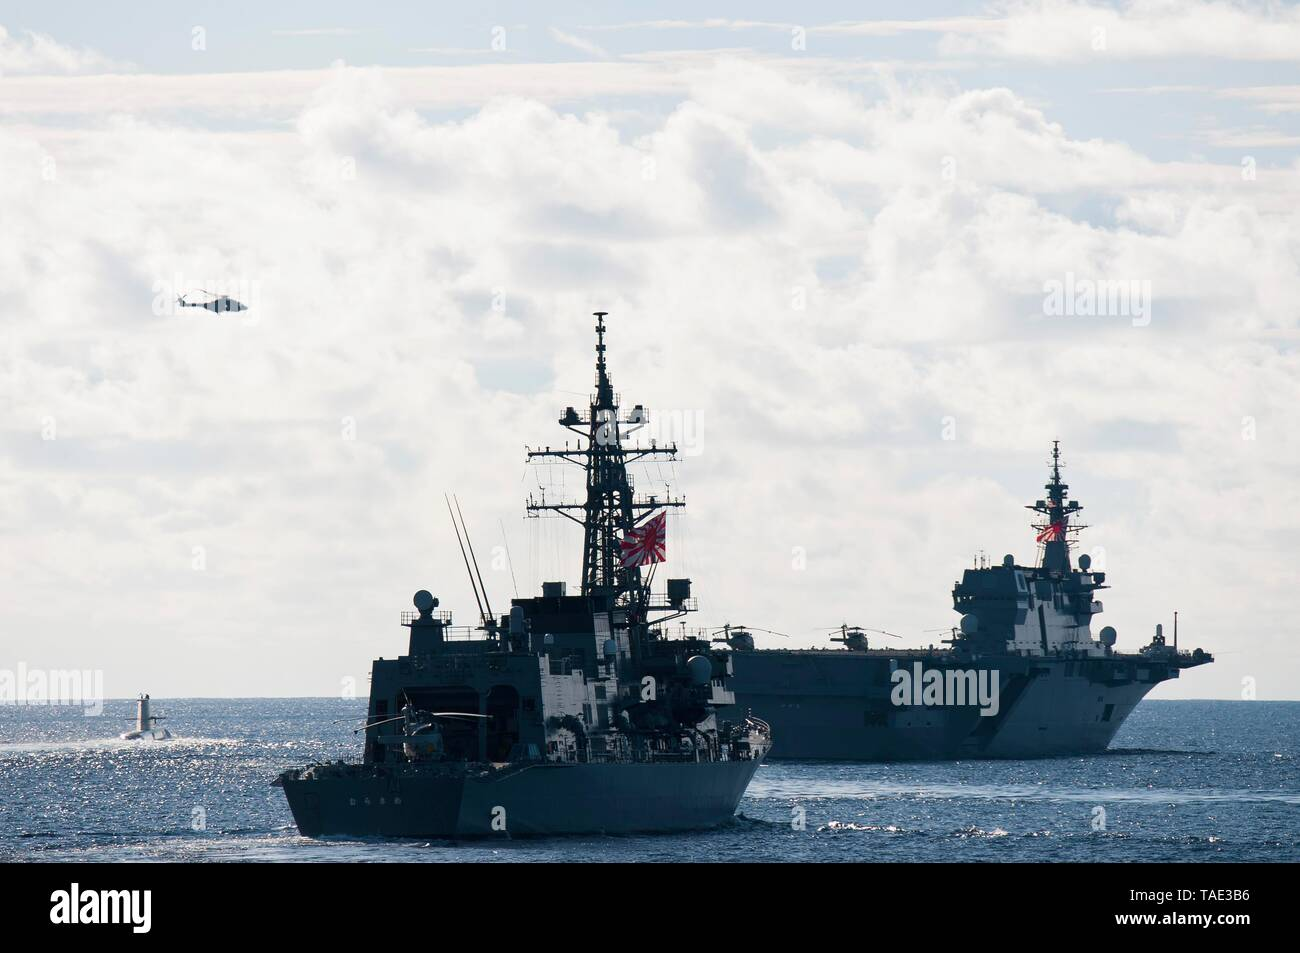 190521-N-VA840-0047 INDIAN OCEAN (May 21, 2019) The Japan Maritime Self Defense Force Izumo-class helicopter destroyer JS Izumo (DDH 183), and the Murasame-class destroyer JS Murasame (DD 101), and the Royal Australian Navy's HMAS Collins (SSG 73) participate in a multi-nation group sail in the Indian Ocean. The Arleigh Burke-class guided-missile destroyer USS William P. Lawrence (DDG 110), the Henry J. Kaiser-class fleet replenishment oiler USNS Pecos (T-AO 197) sailed in formation, alongside ships and aircraft from the French, Japanese, and Australian navies. William P. Lawrence is deployed  - Stock Image